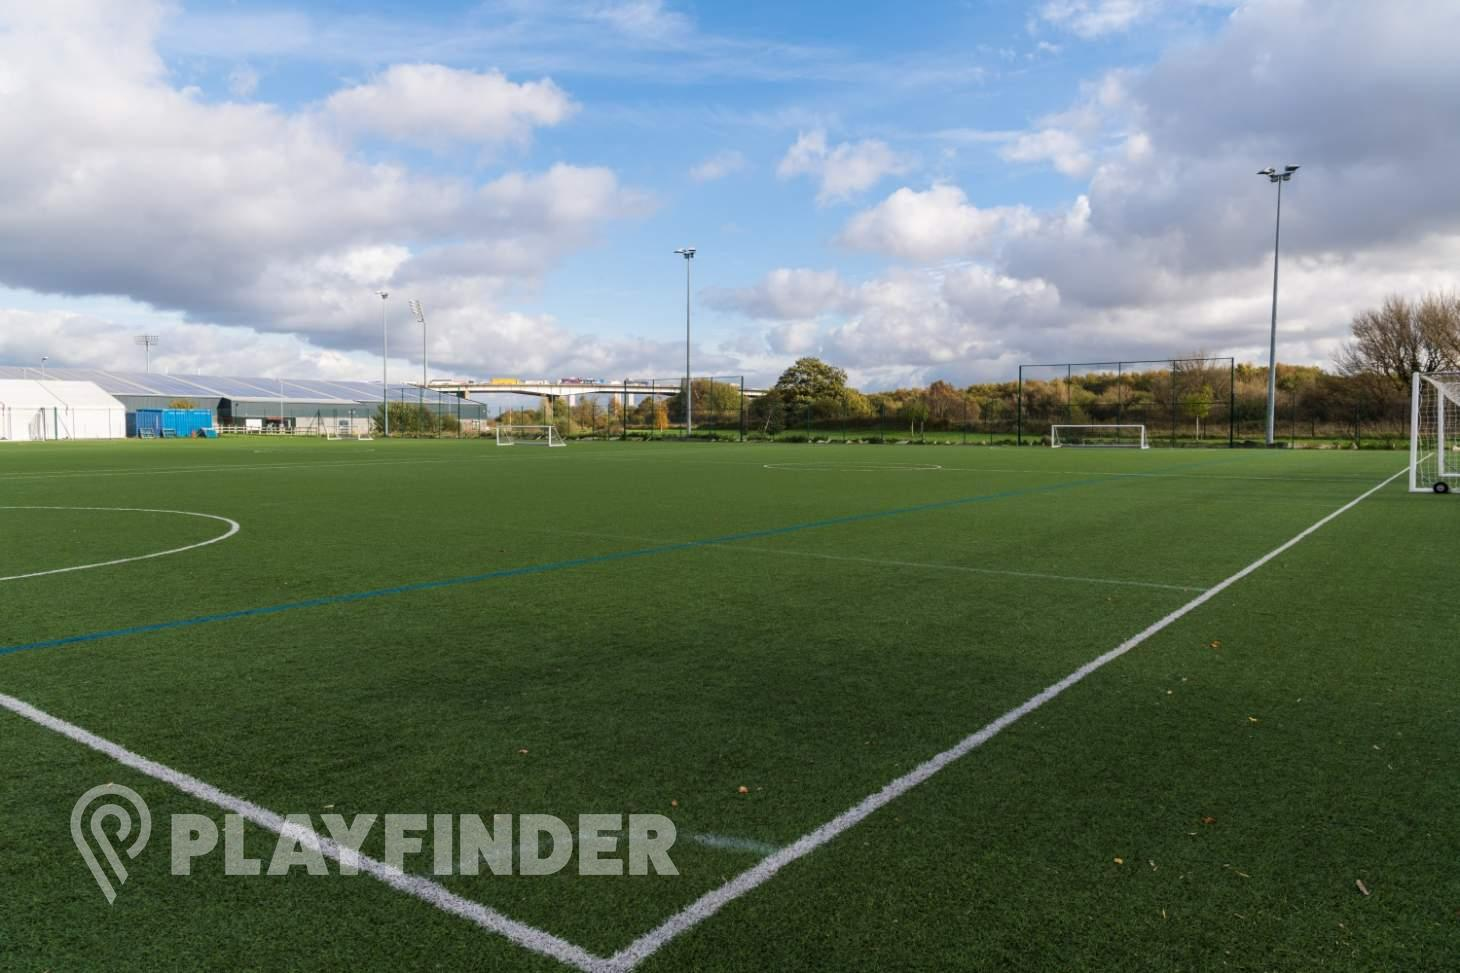 AJ Bell Stadium Union | 3G Astroturf rugby pitch